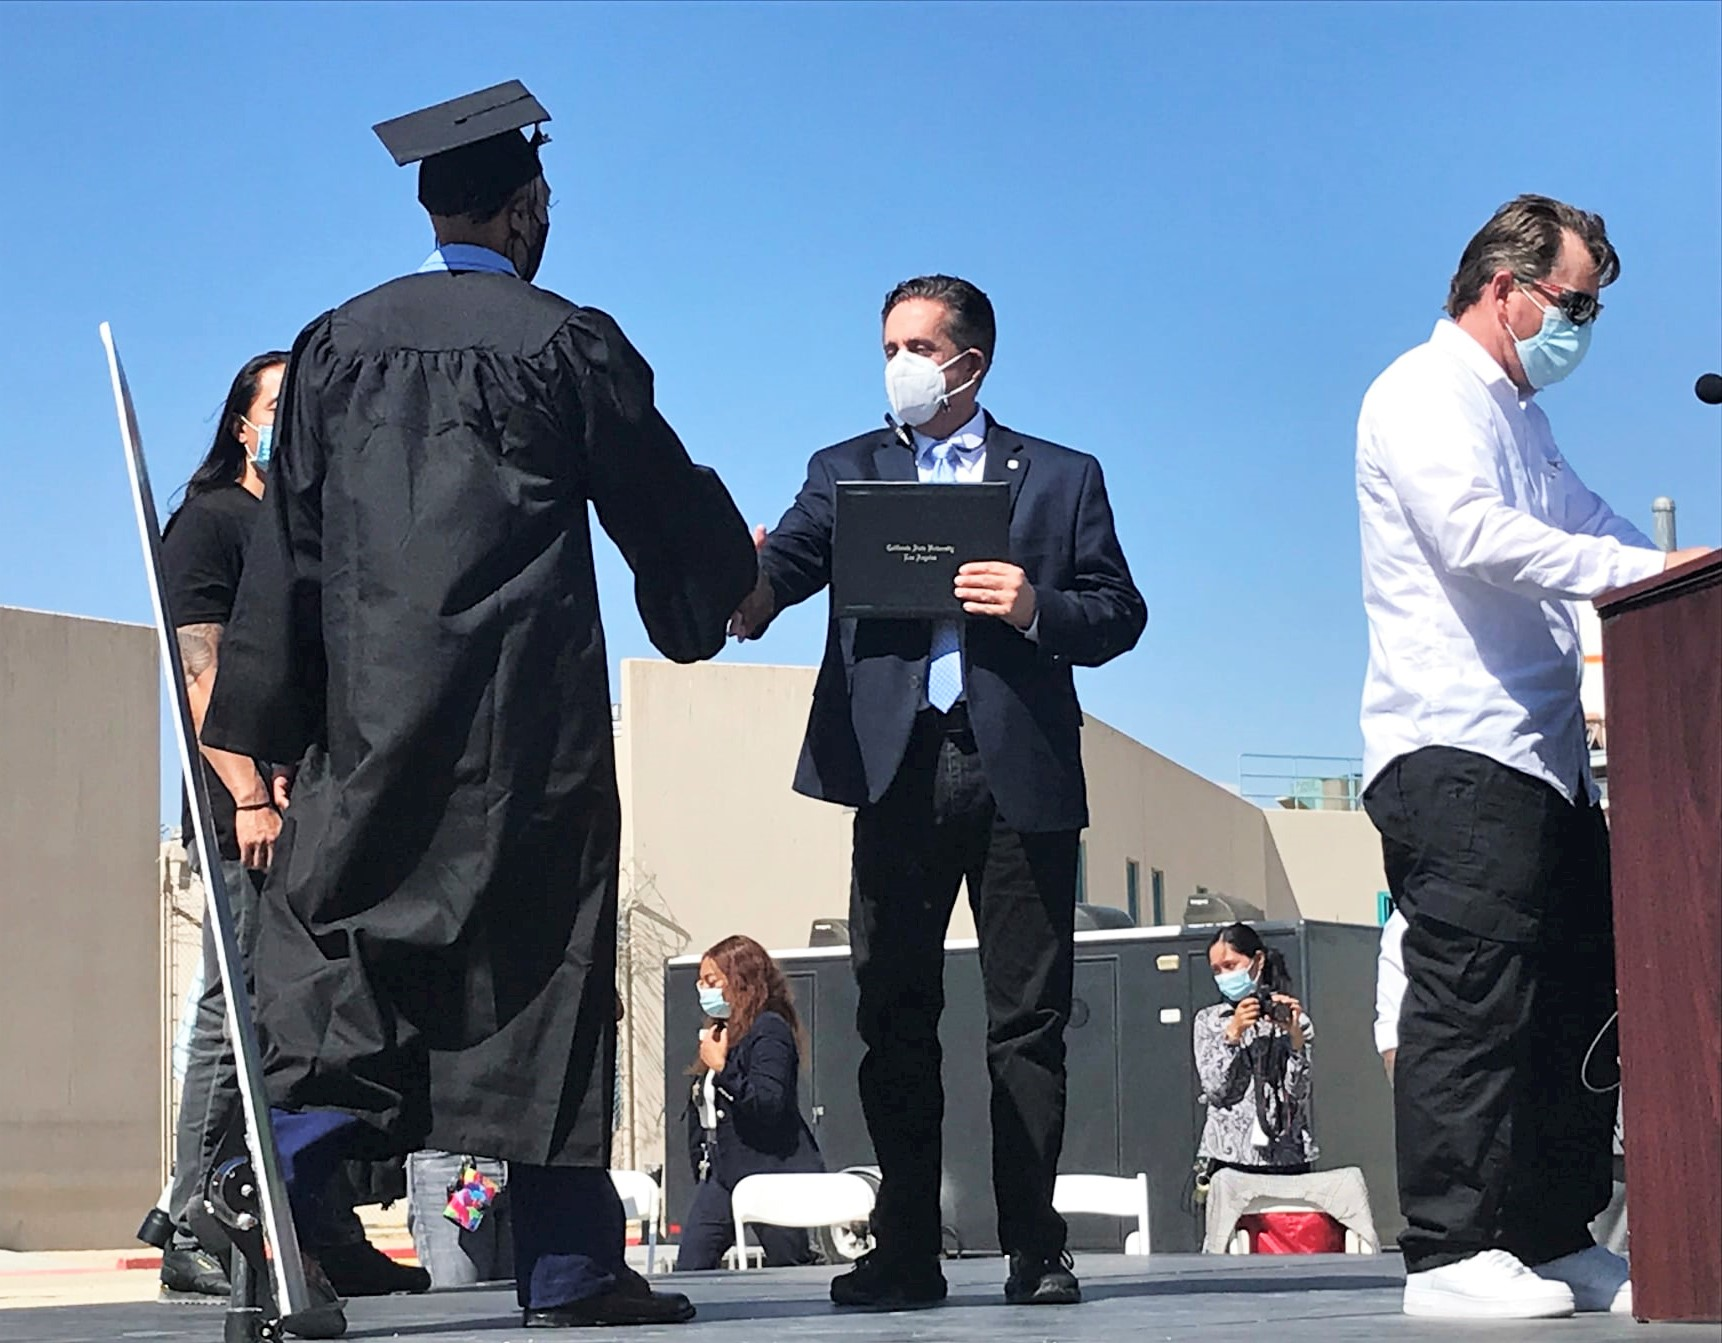 A man receives a degree during a ceremony.